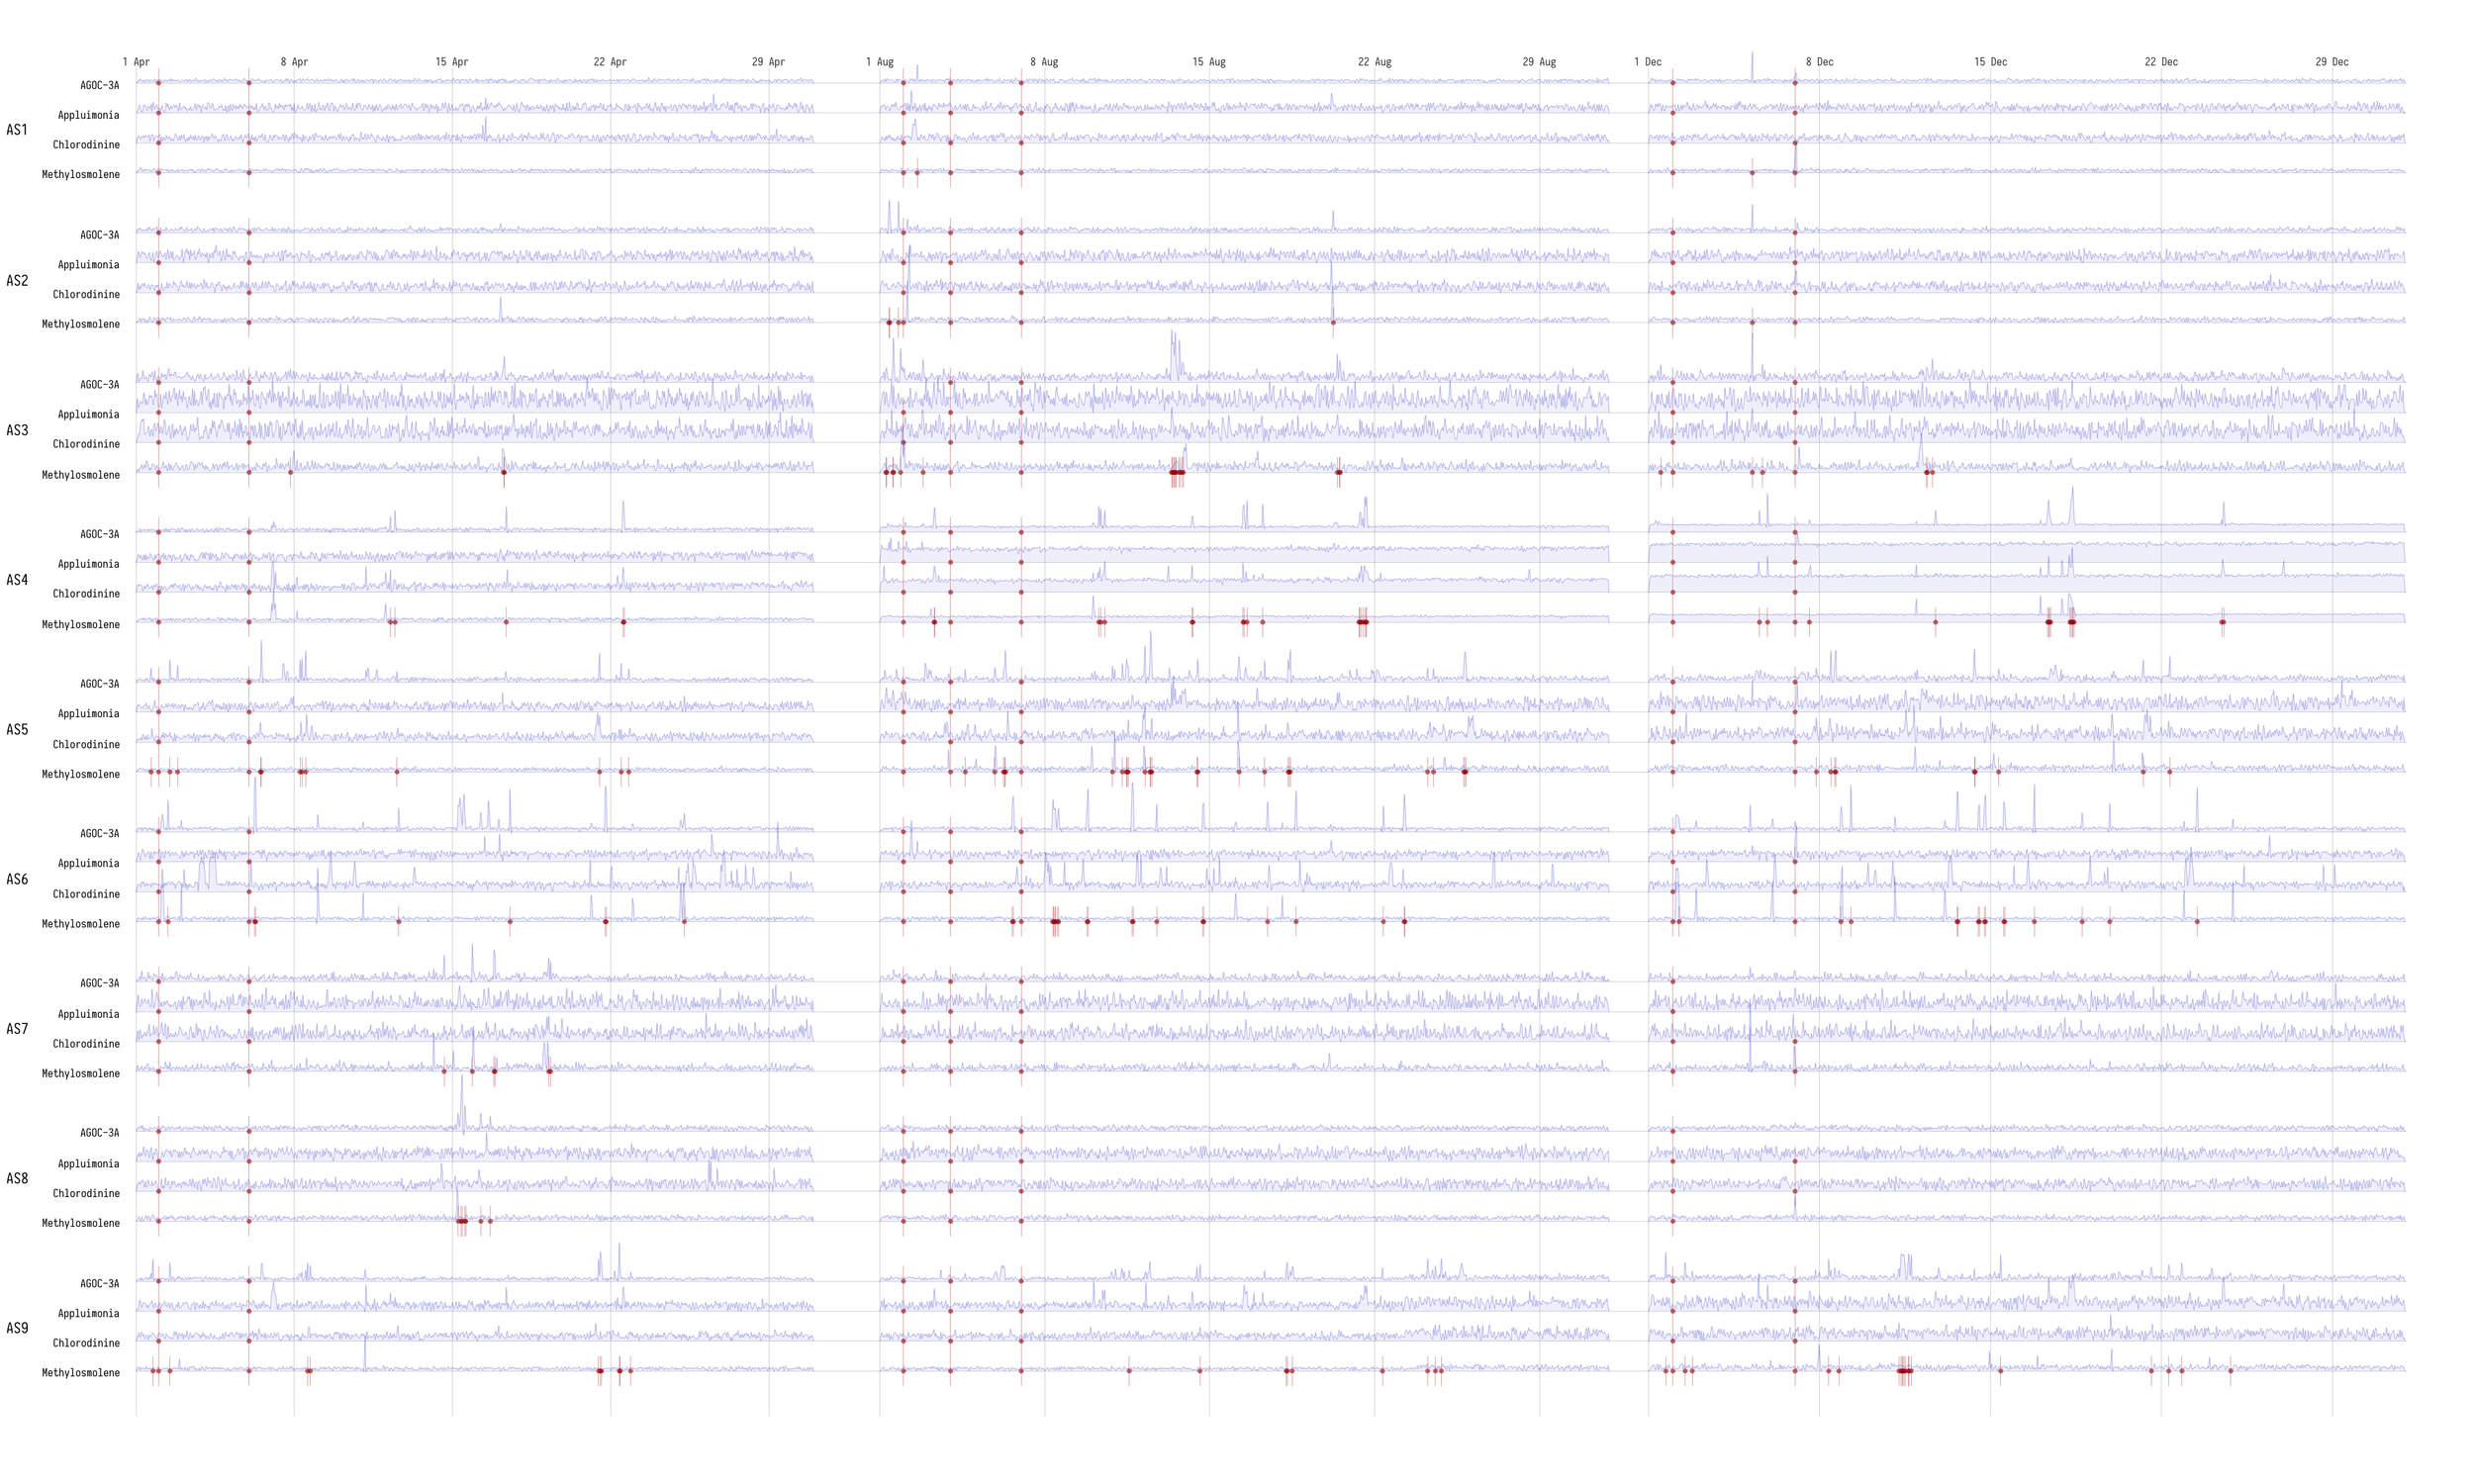 Figure 1  - The 9 sensors' readings over the three month-long periods showing missing readings in red.